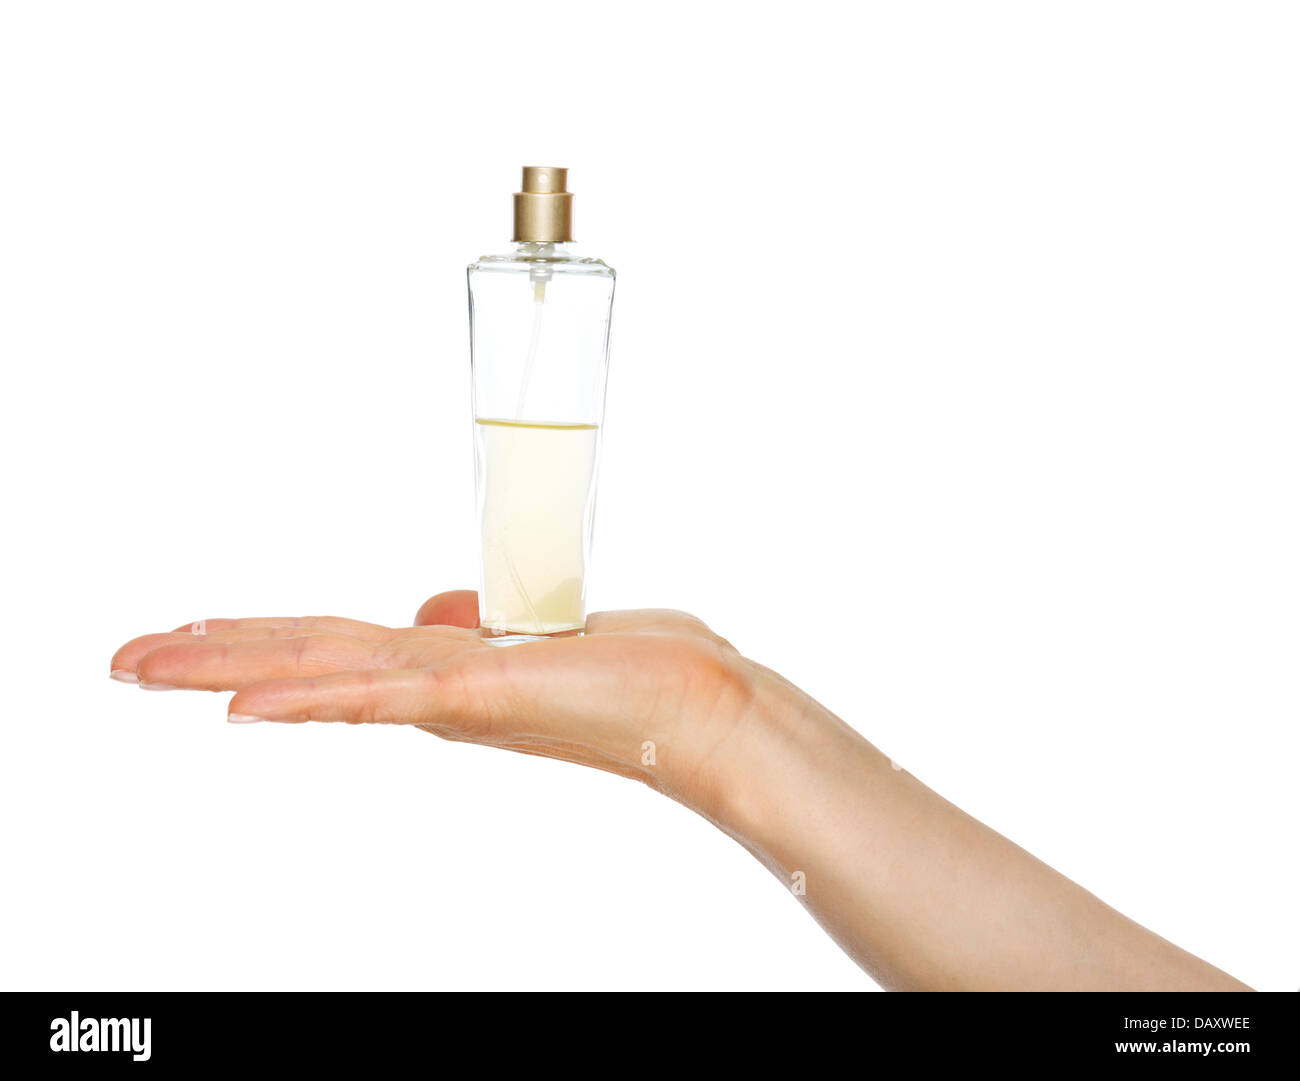 how to advertise perfume